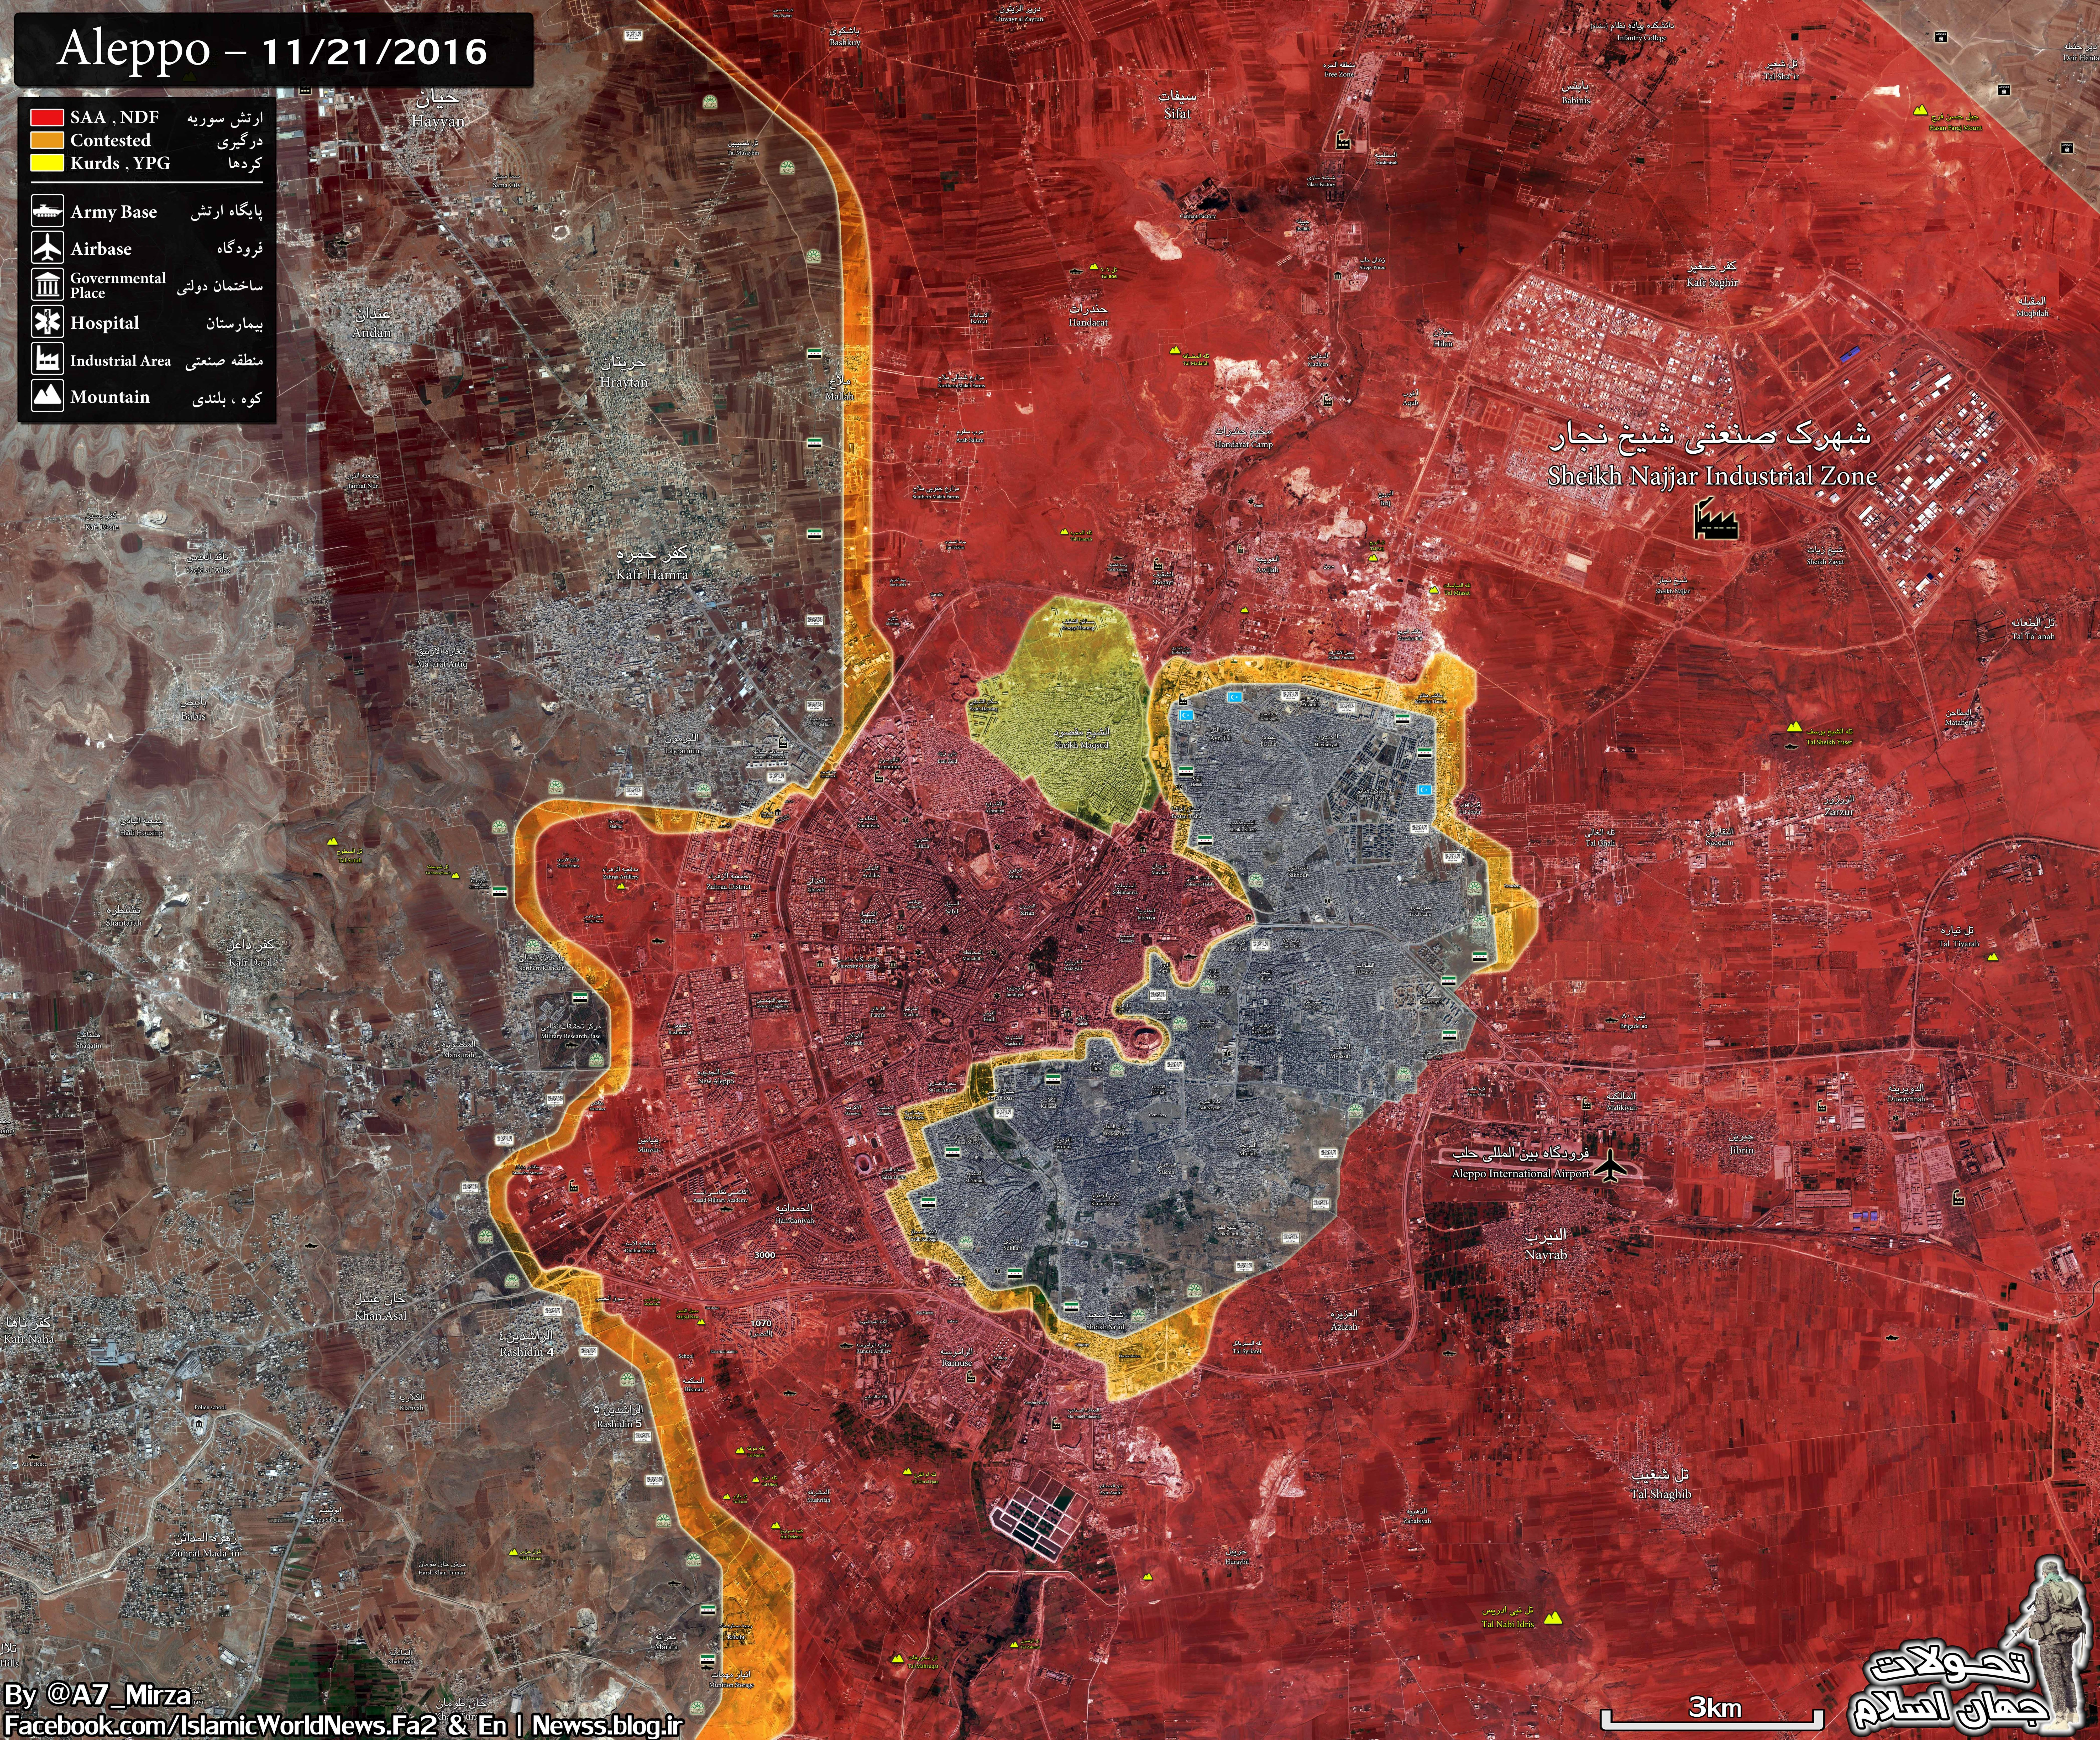 Government Forces Advancing inside Aleppo City (Video)